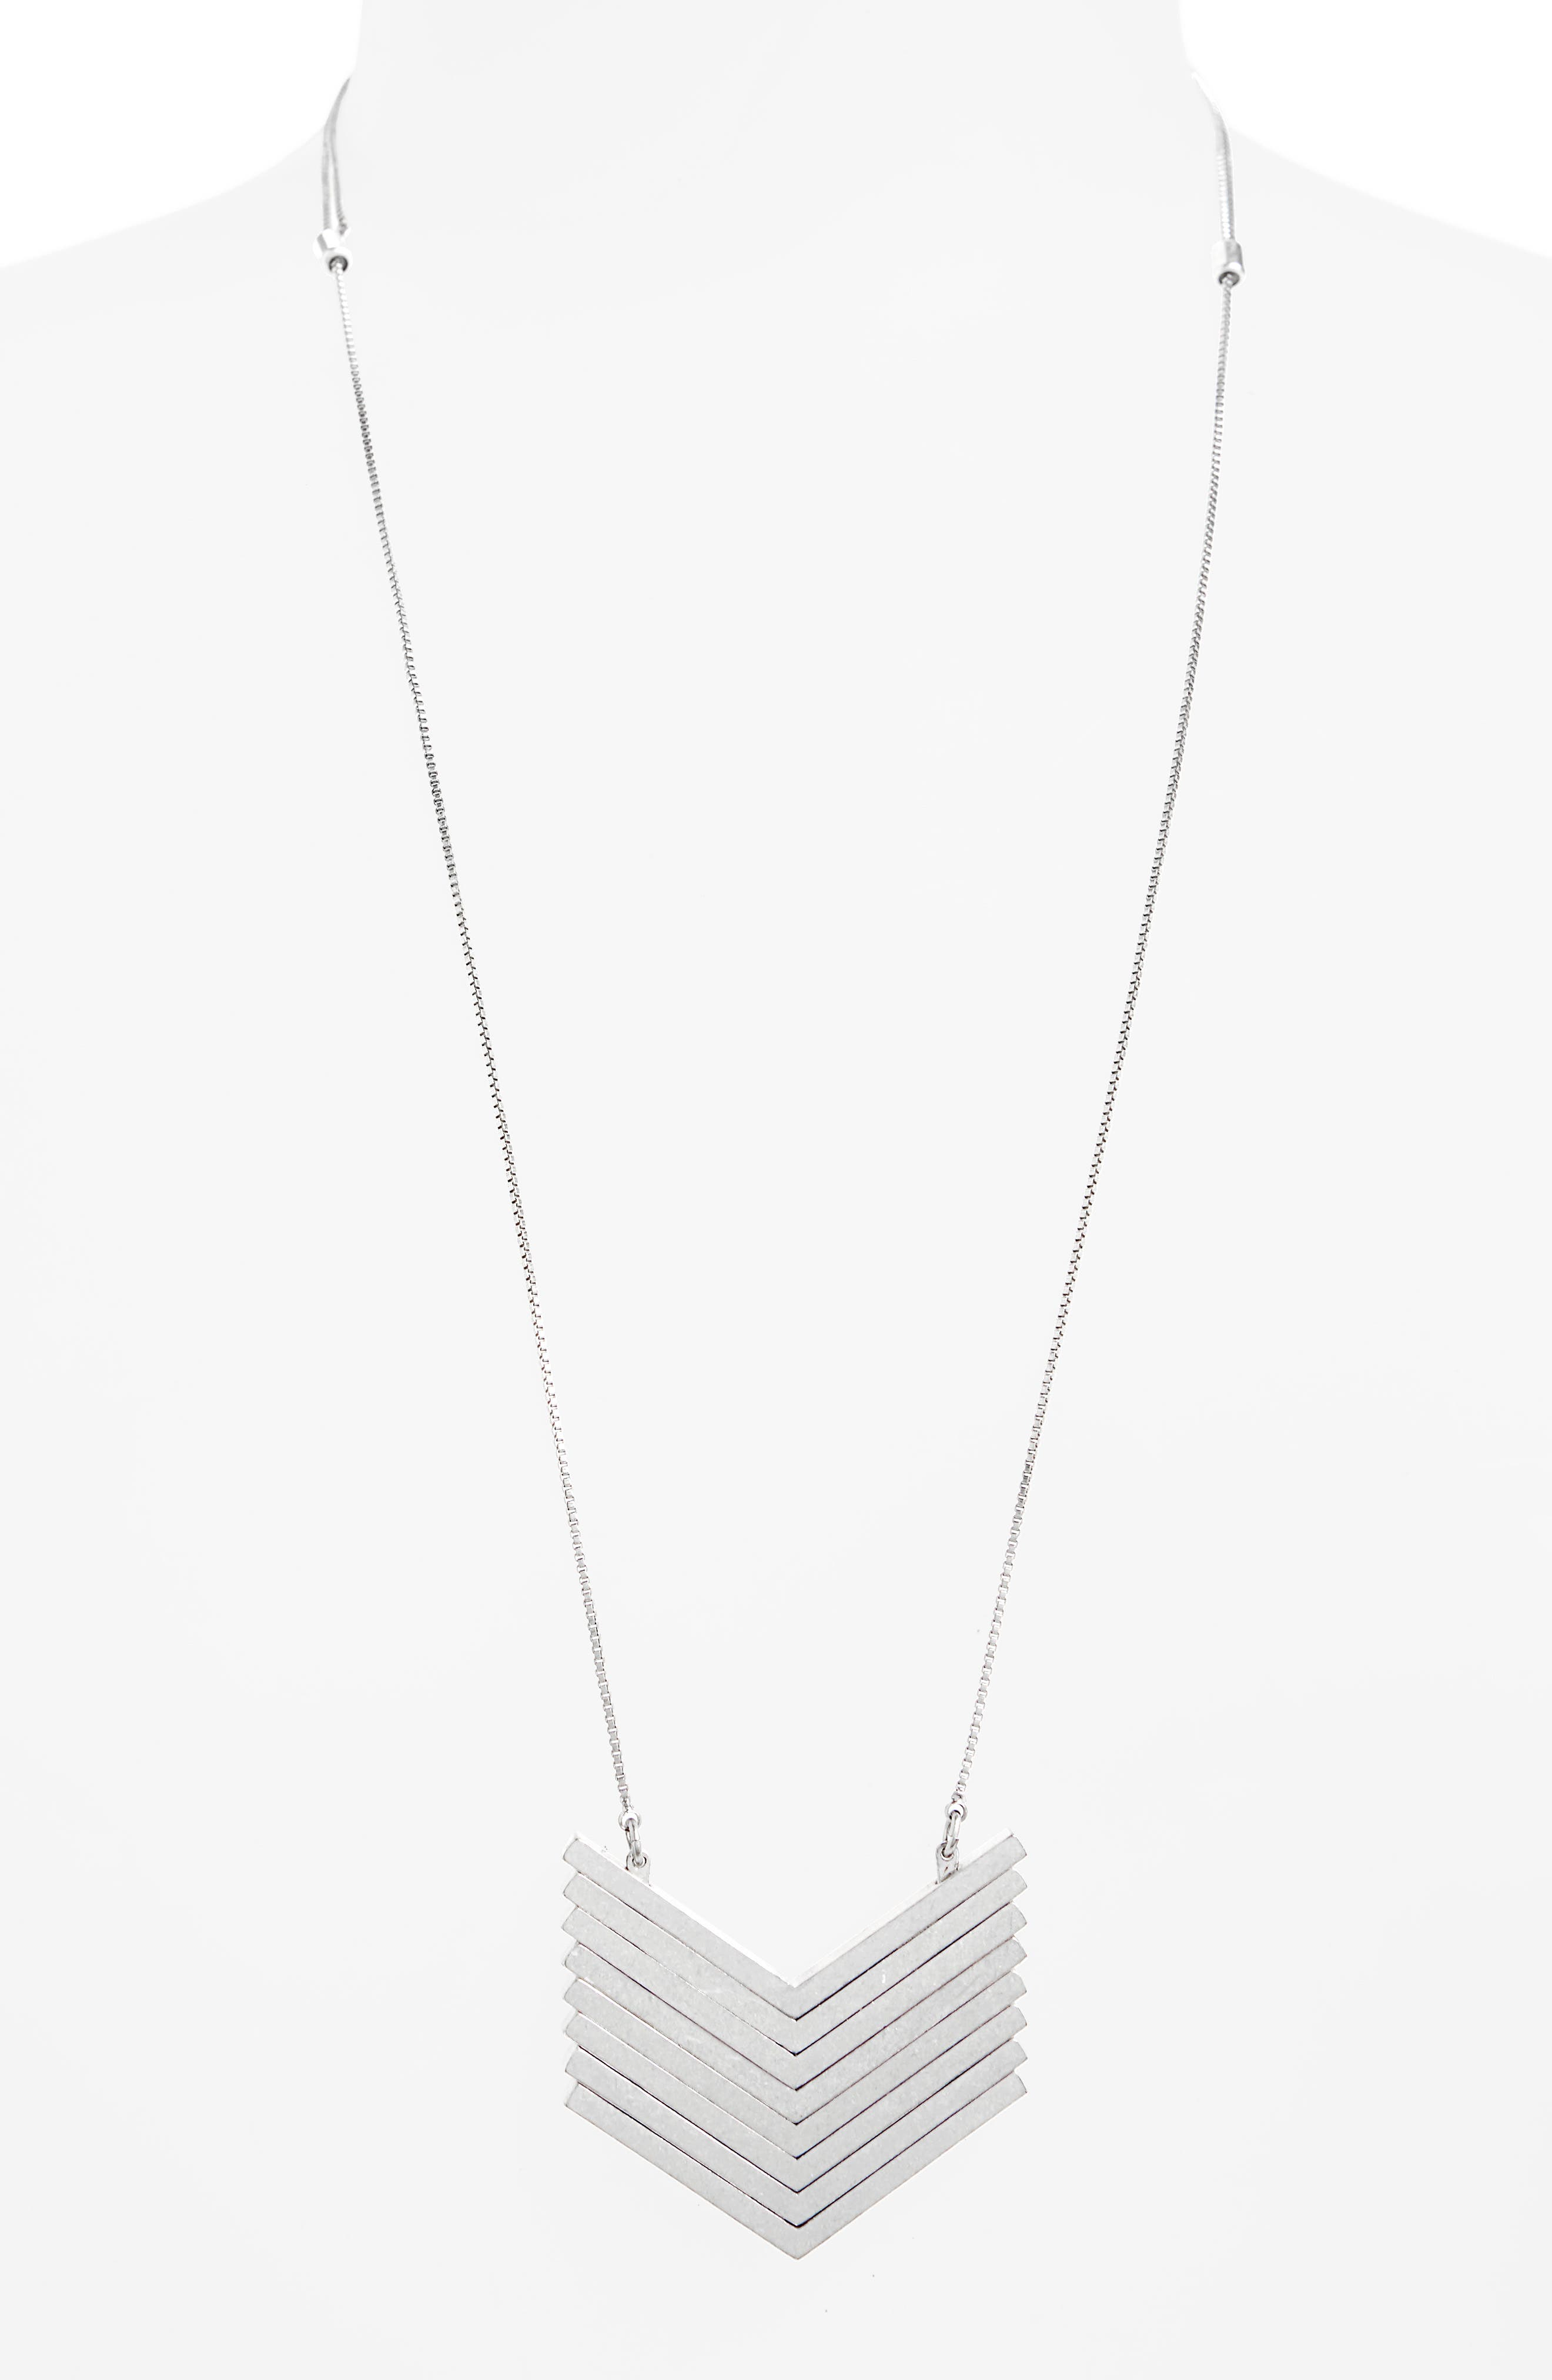 MADEWELL, Arrowstack Necklace, Alternate thumbnail 2, color, LIGHT SILVER OX